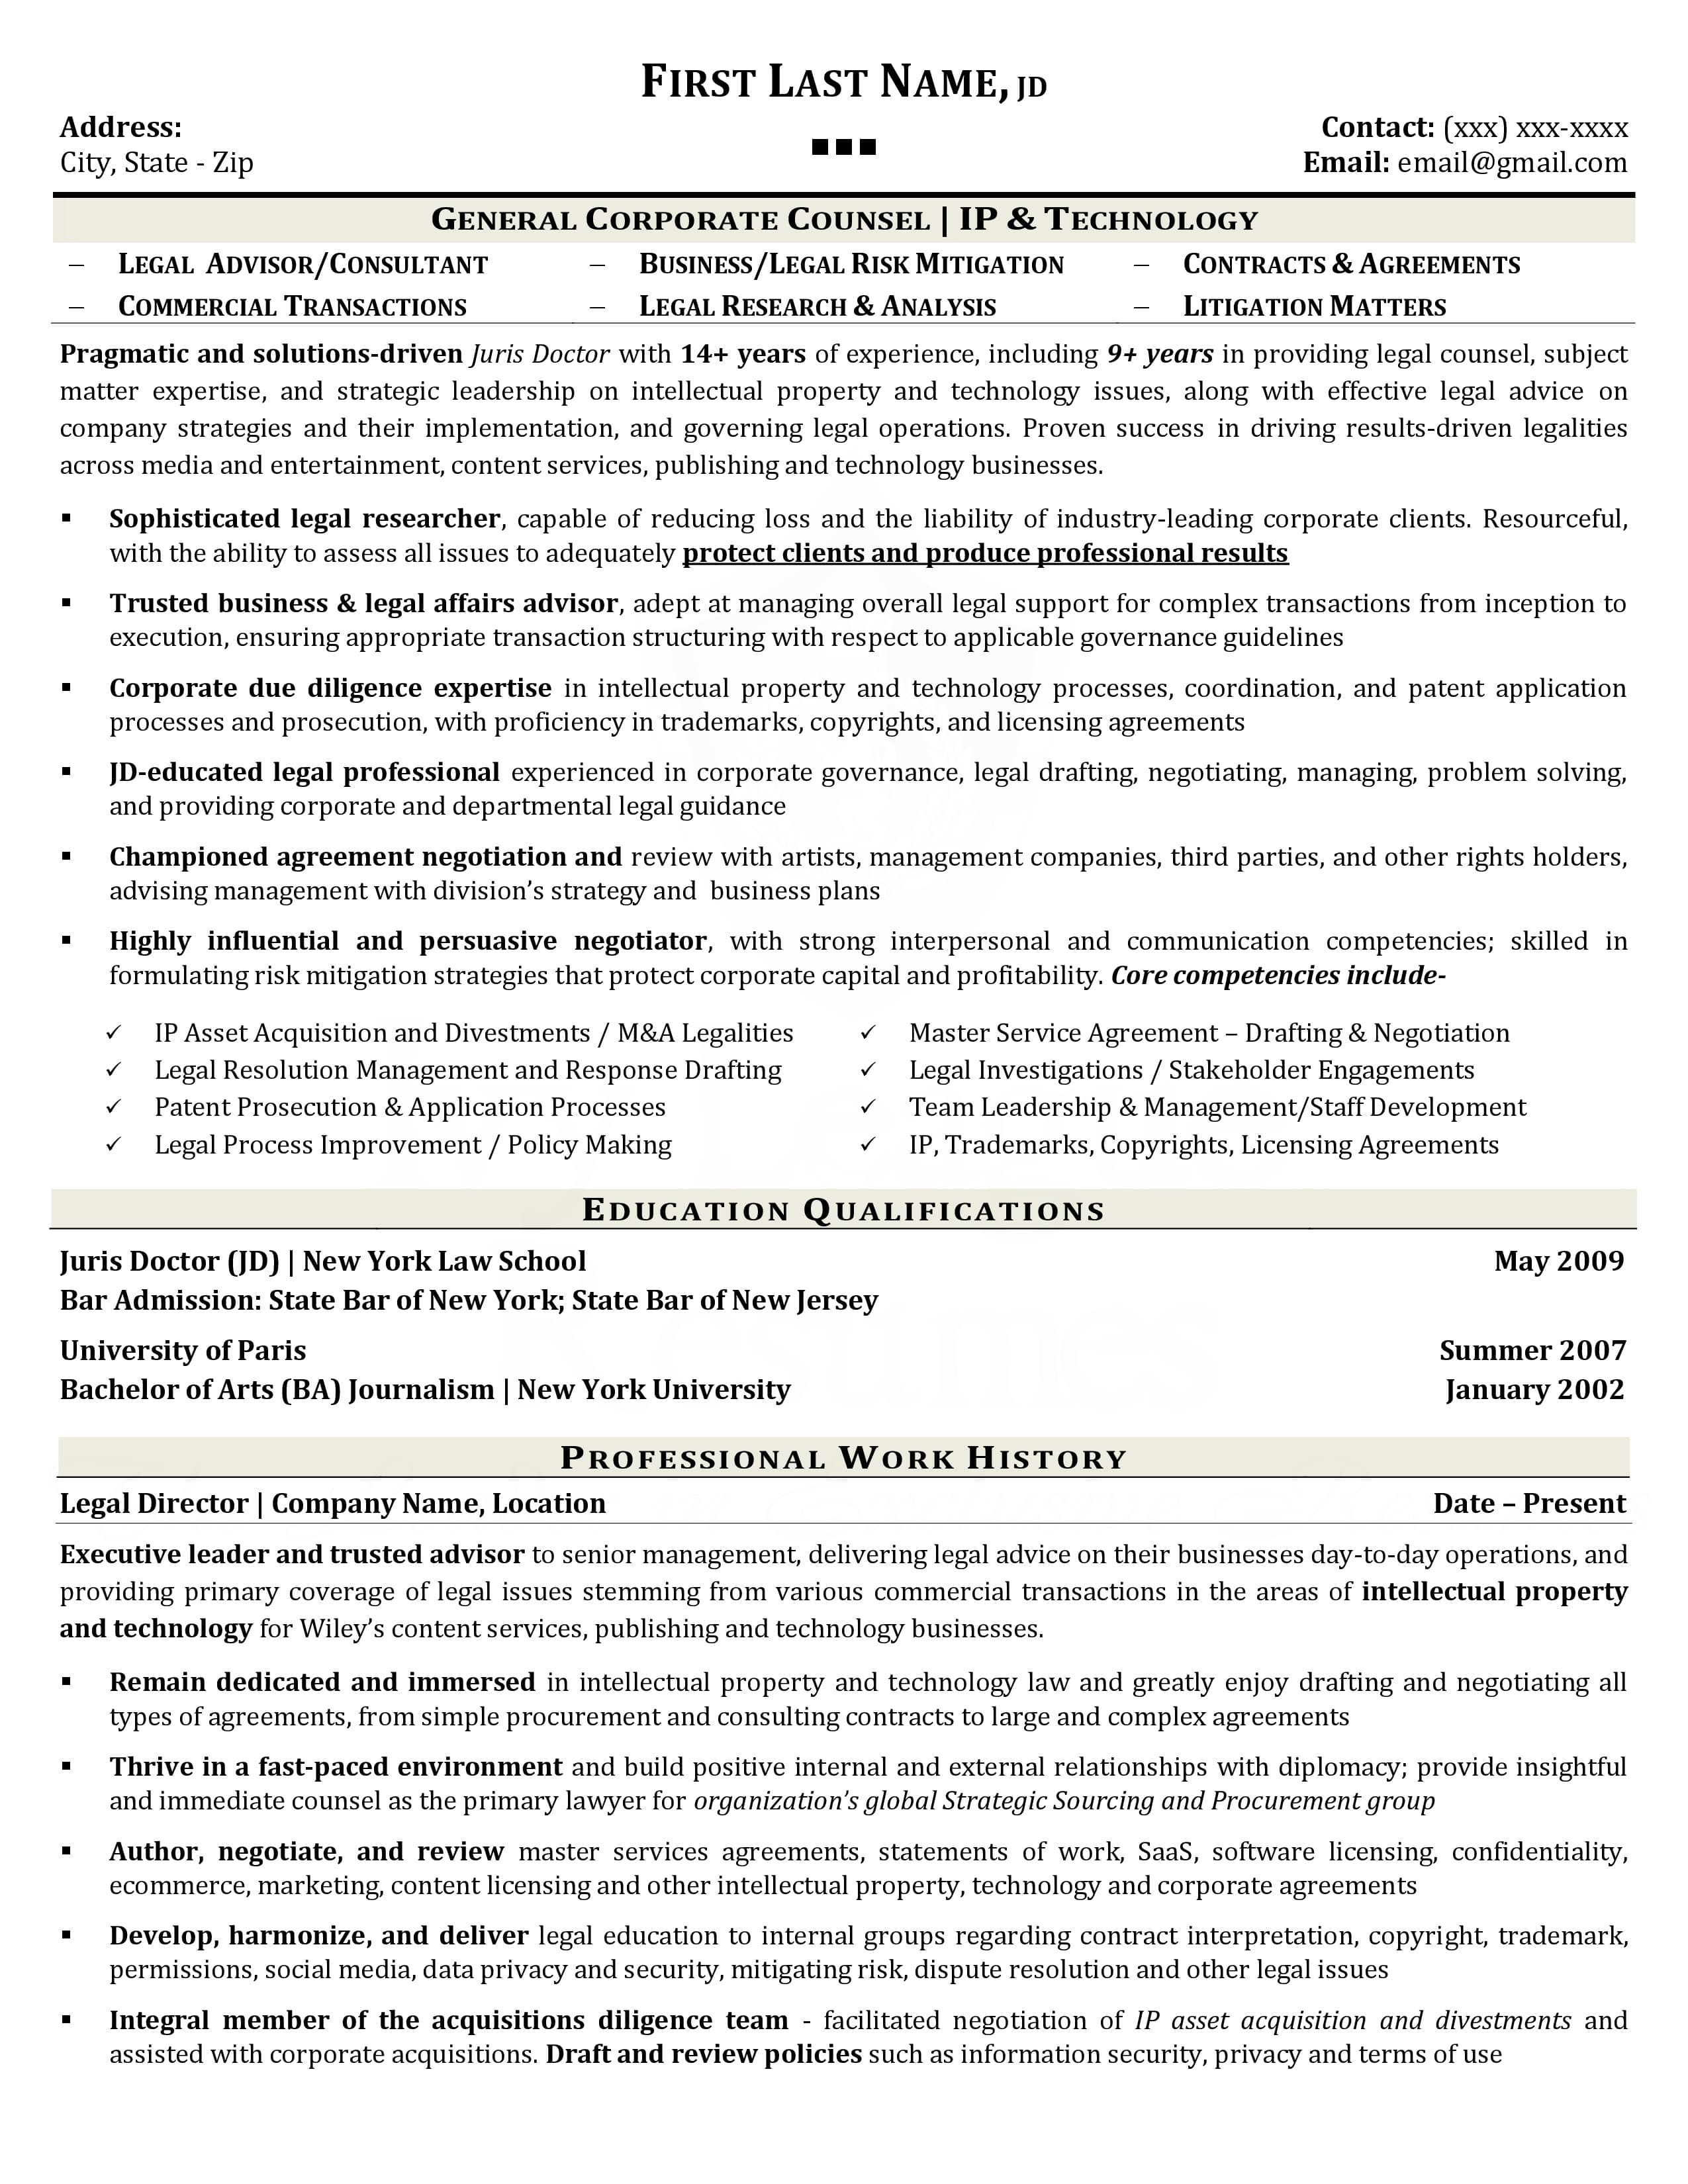 sample high school resume for ivy league